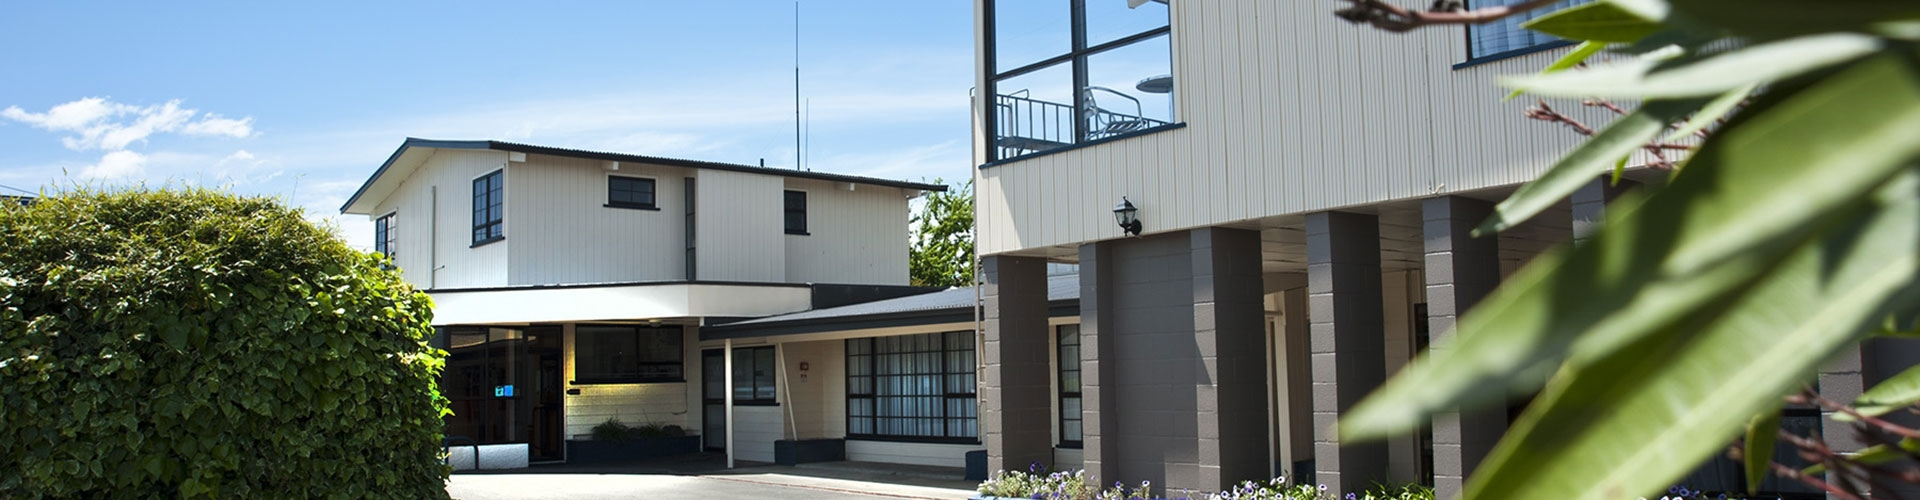 quality motel accommodation in Waipukurau